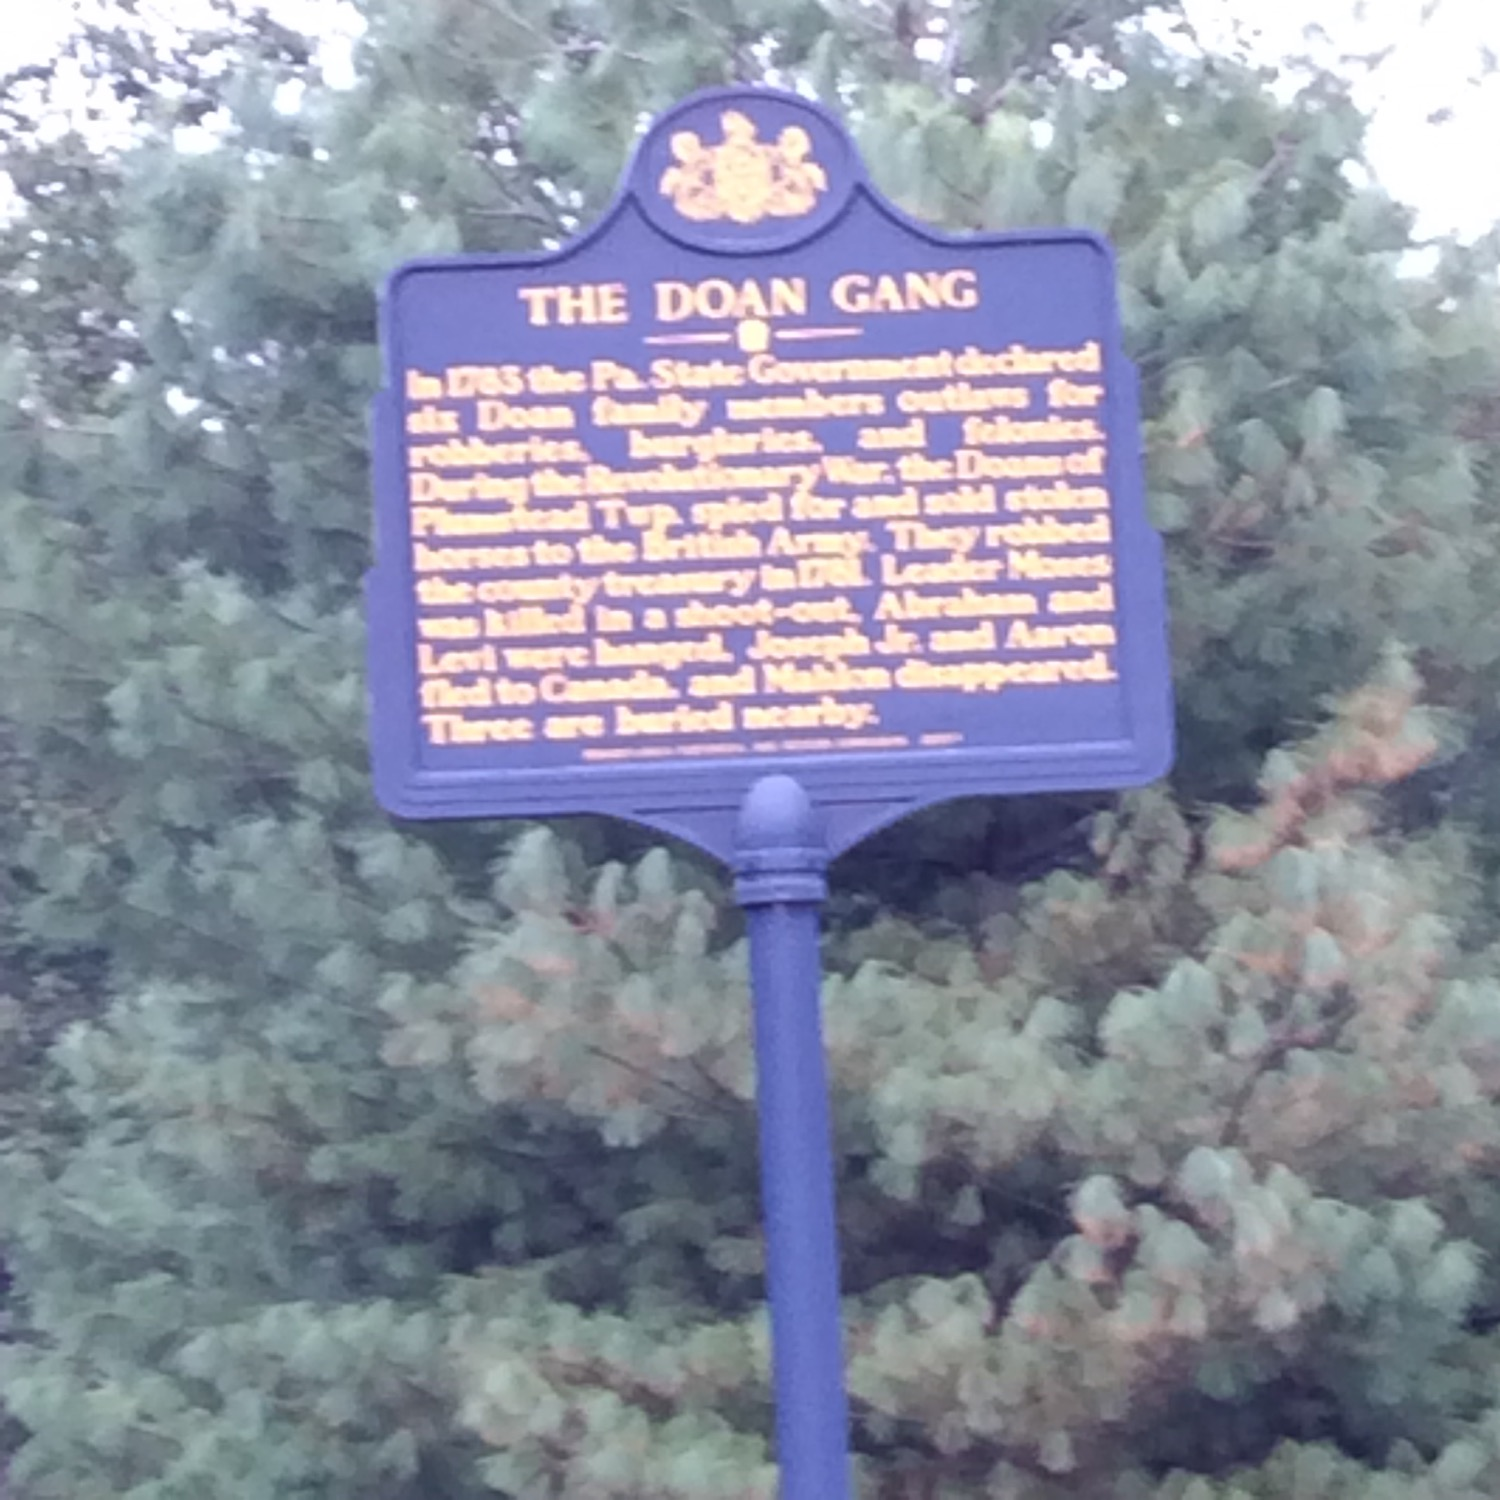 A lovely blurry view of the Pennsylvania historic marker sign in the front of the Quaker Meetinghouse where the Doans were excommunicated. Unfortunately today they were landscaping the cemetery so no pictures of that.